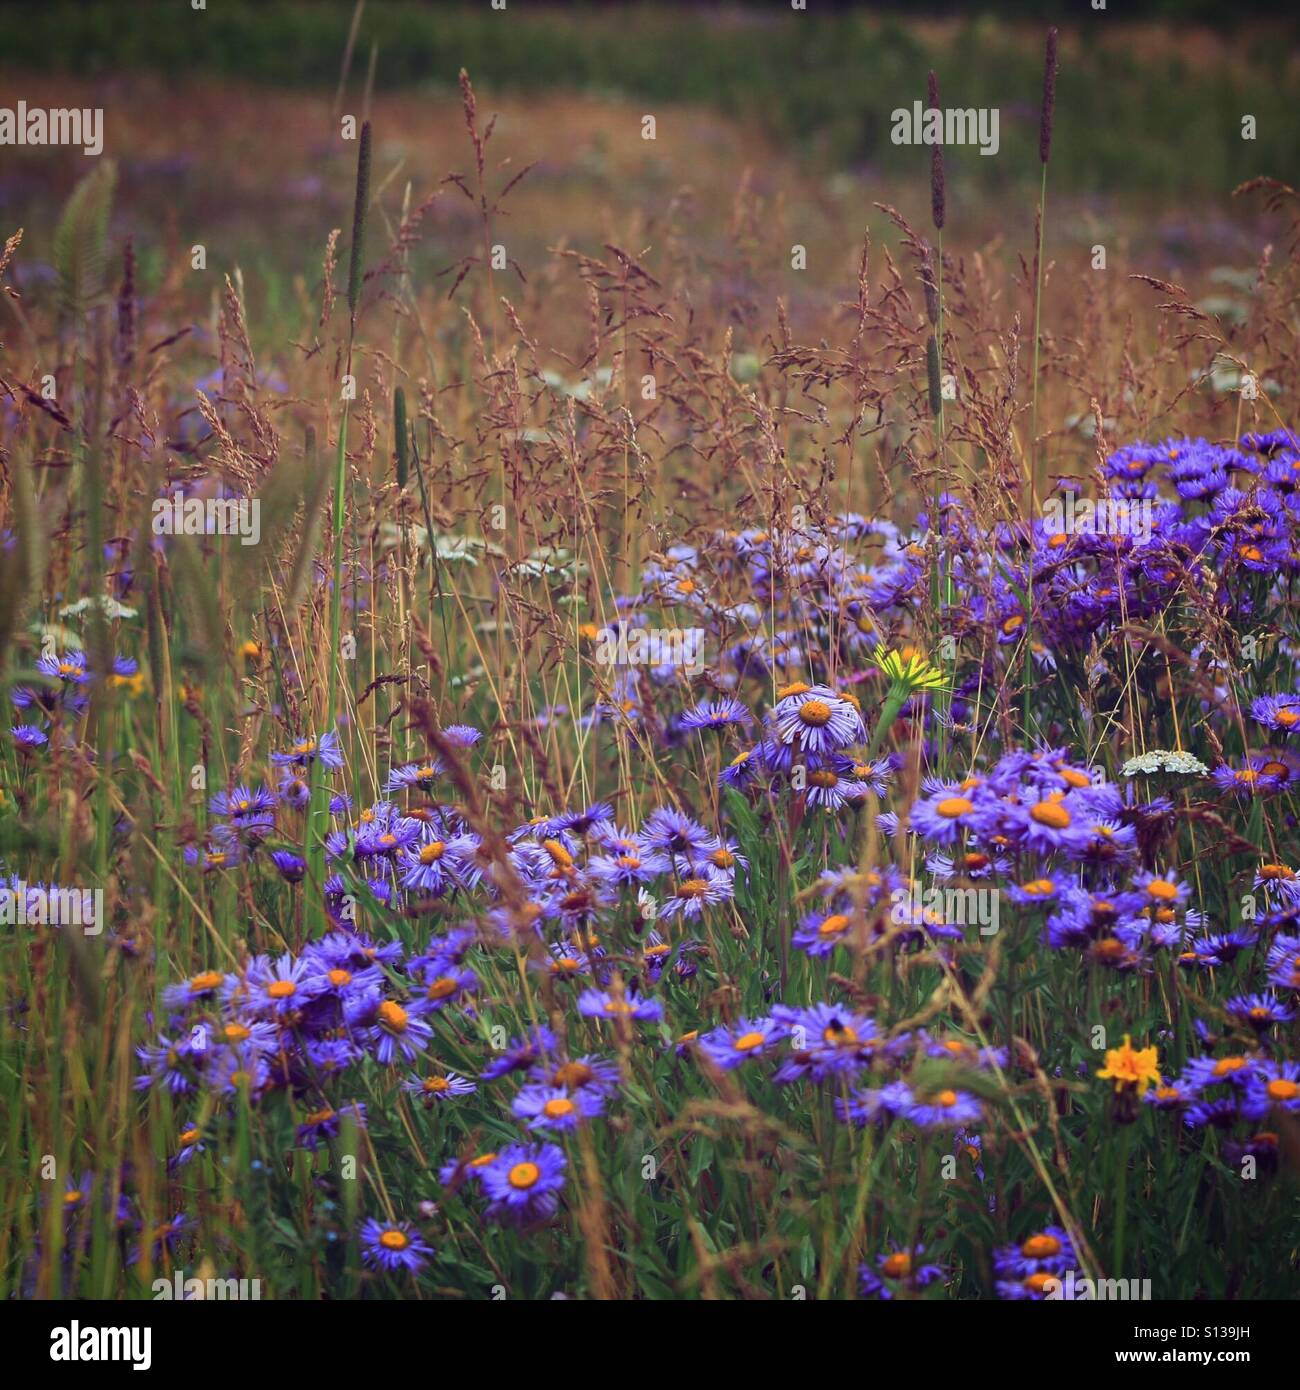 Wild Flowers Forever - Stock Image